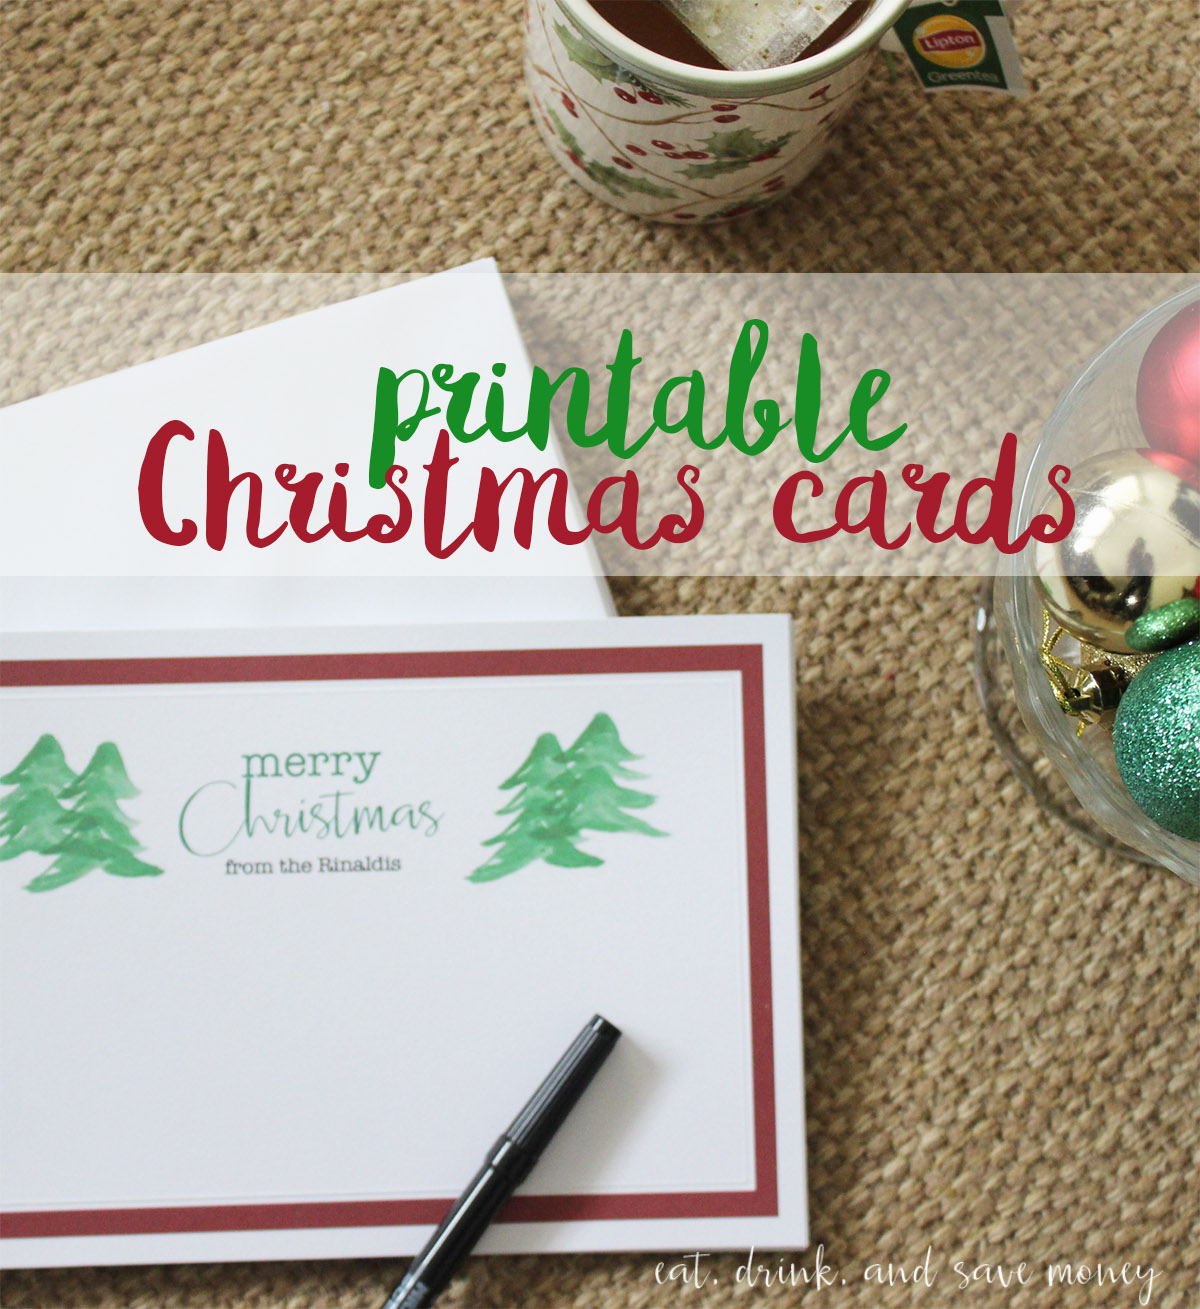 Merry Christmas printable PDF for Christmas cards. Easy way to print out holiday cards